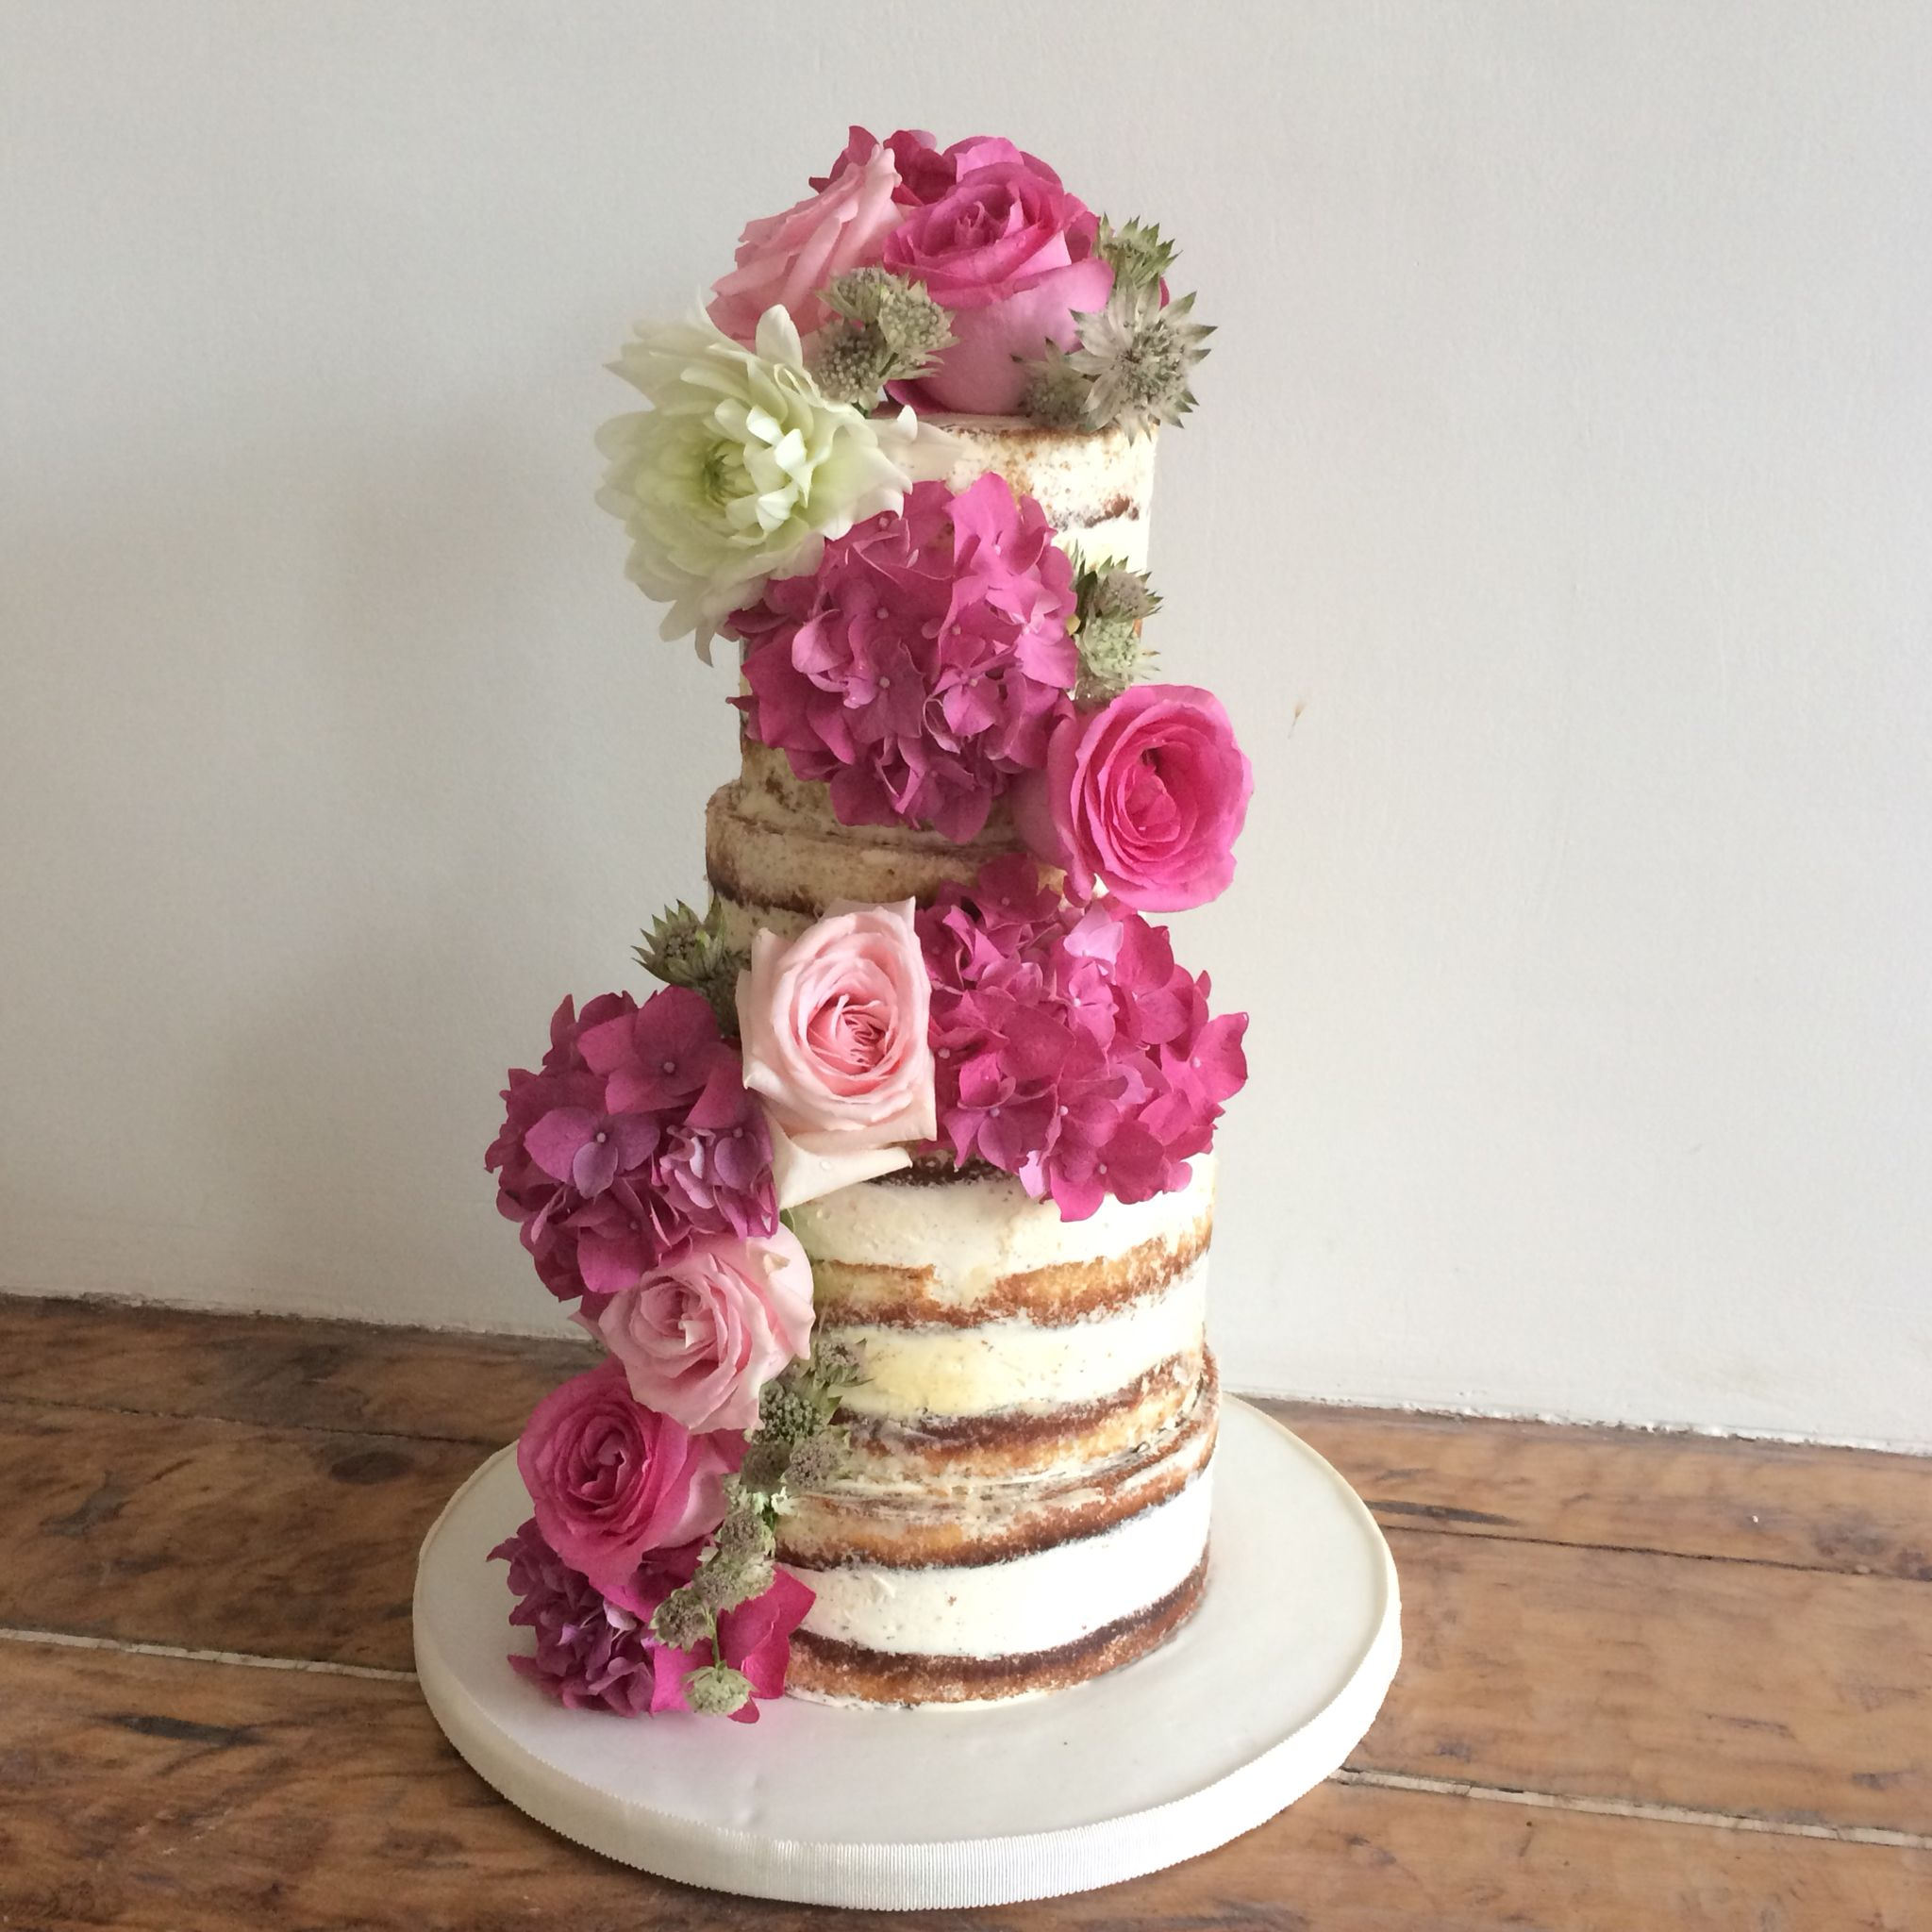 stacking sponge wedding cakes cake with fresh flowers in pink synies syniesparis 20475